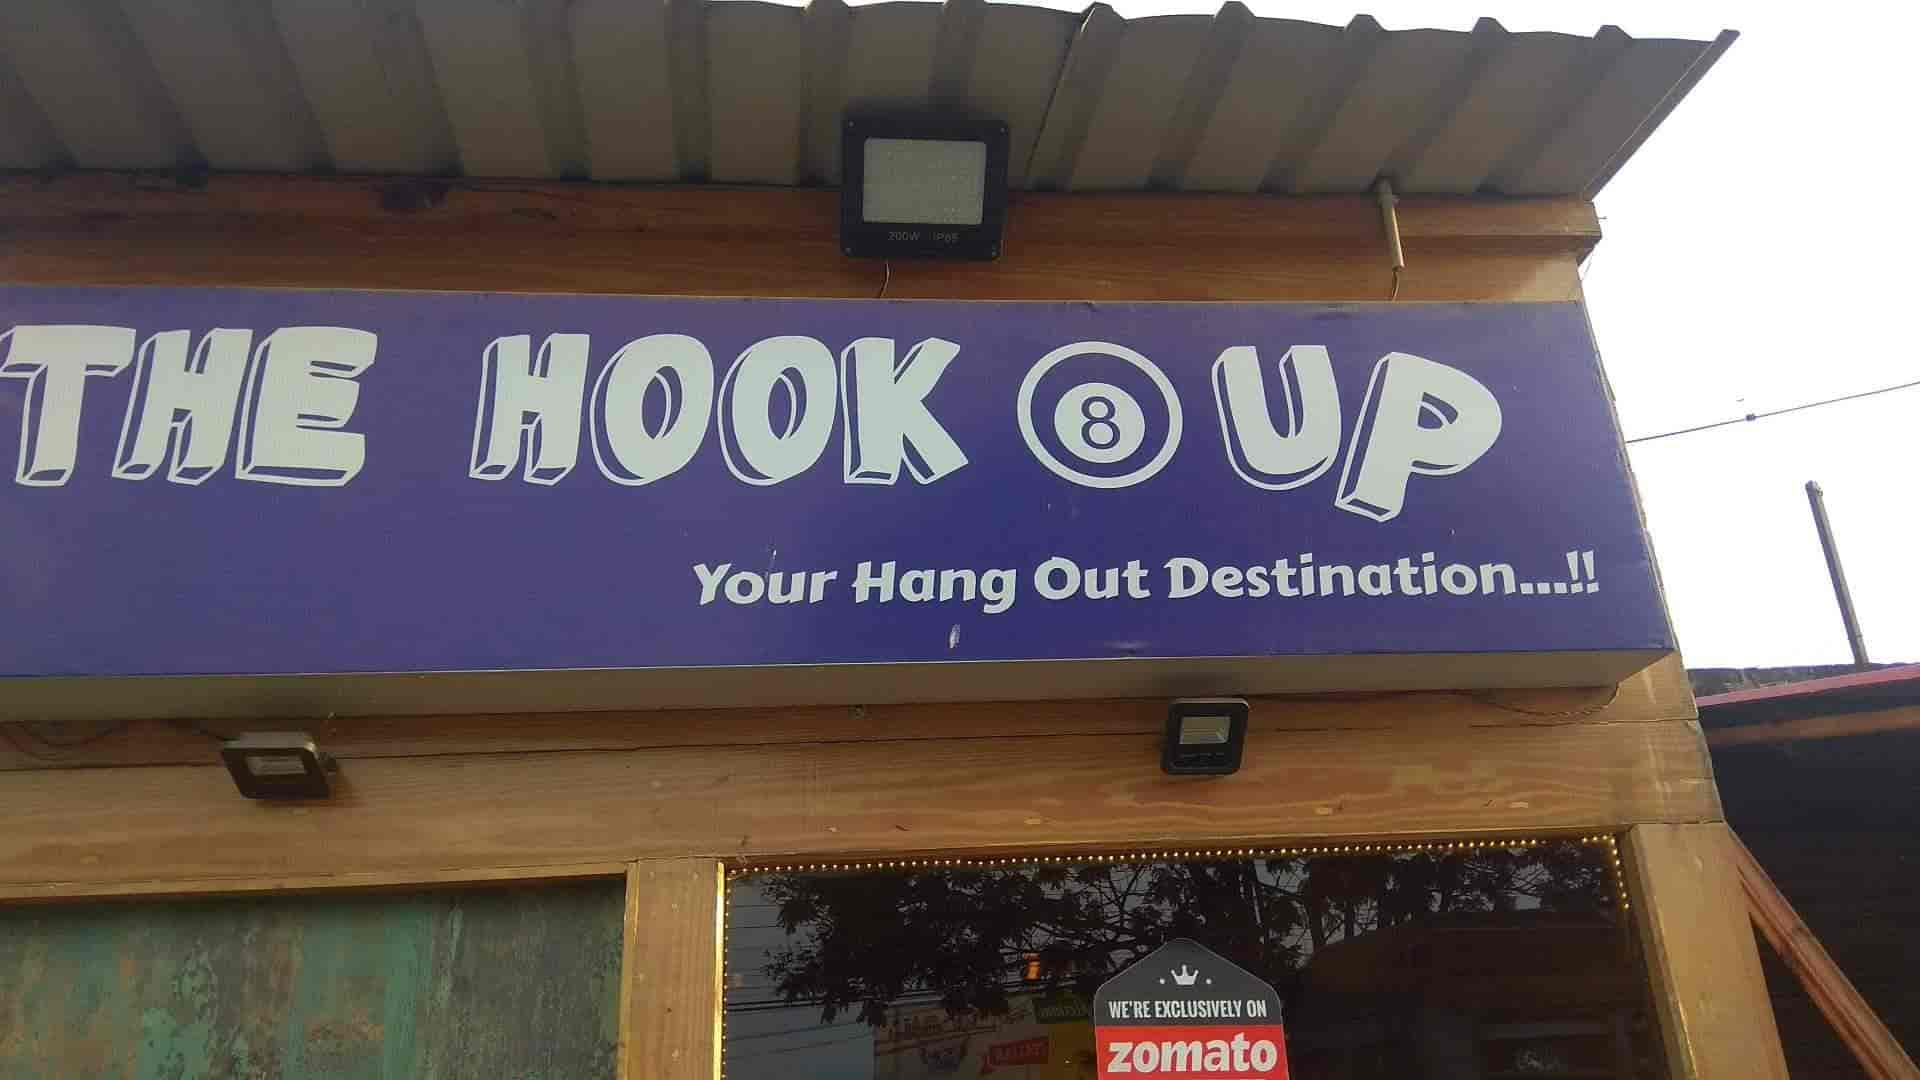 Hook up in kolkata